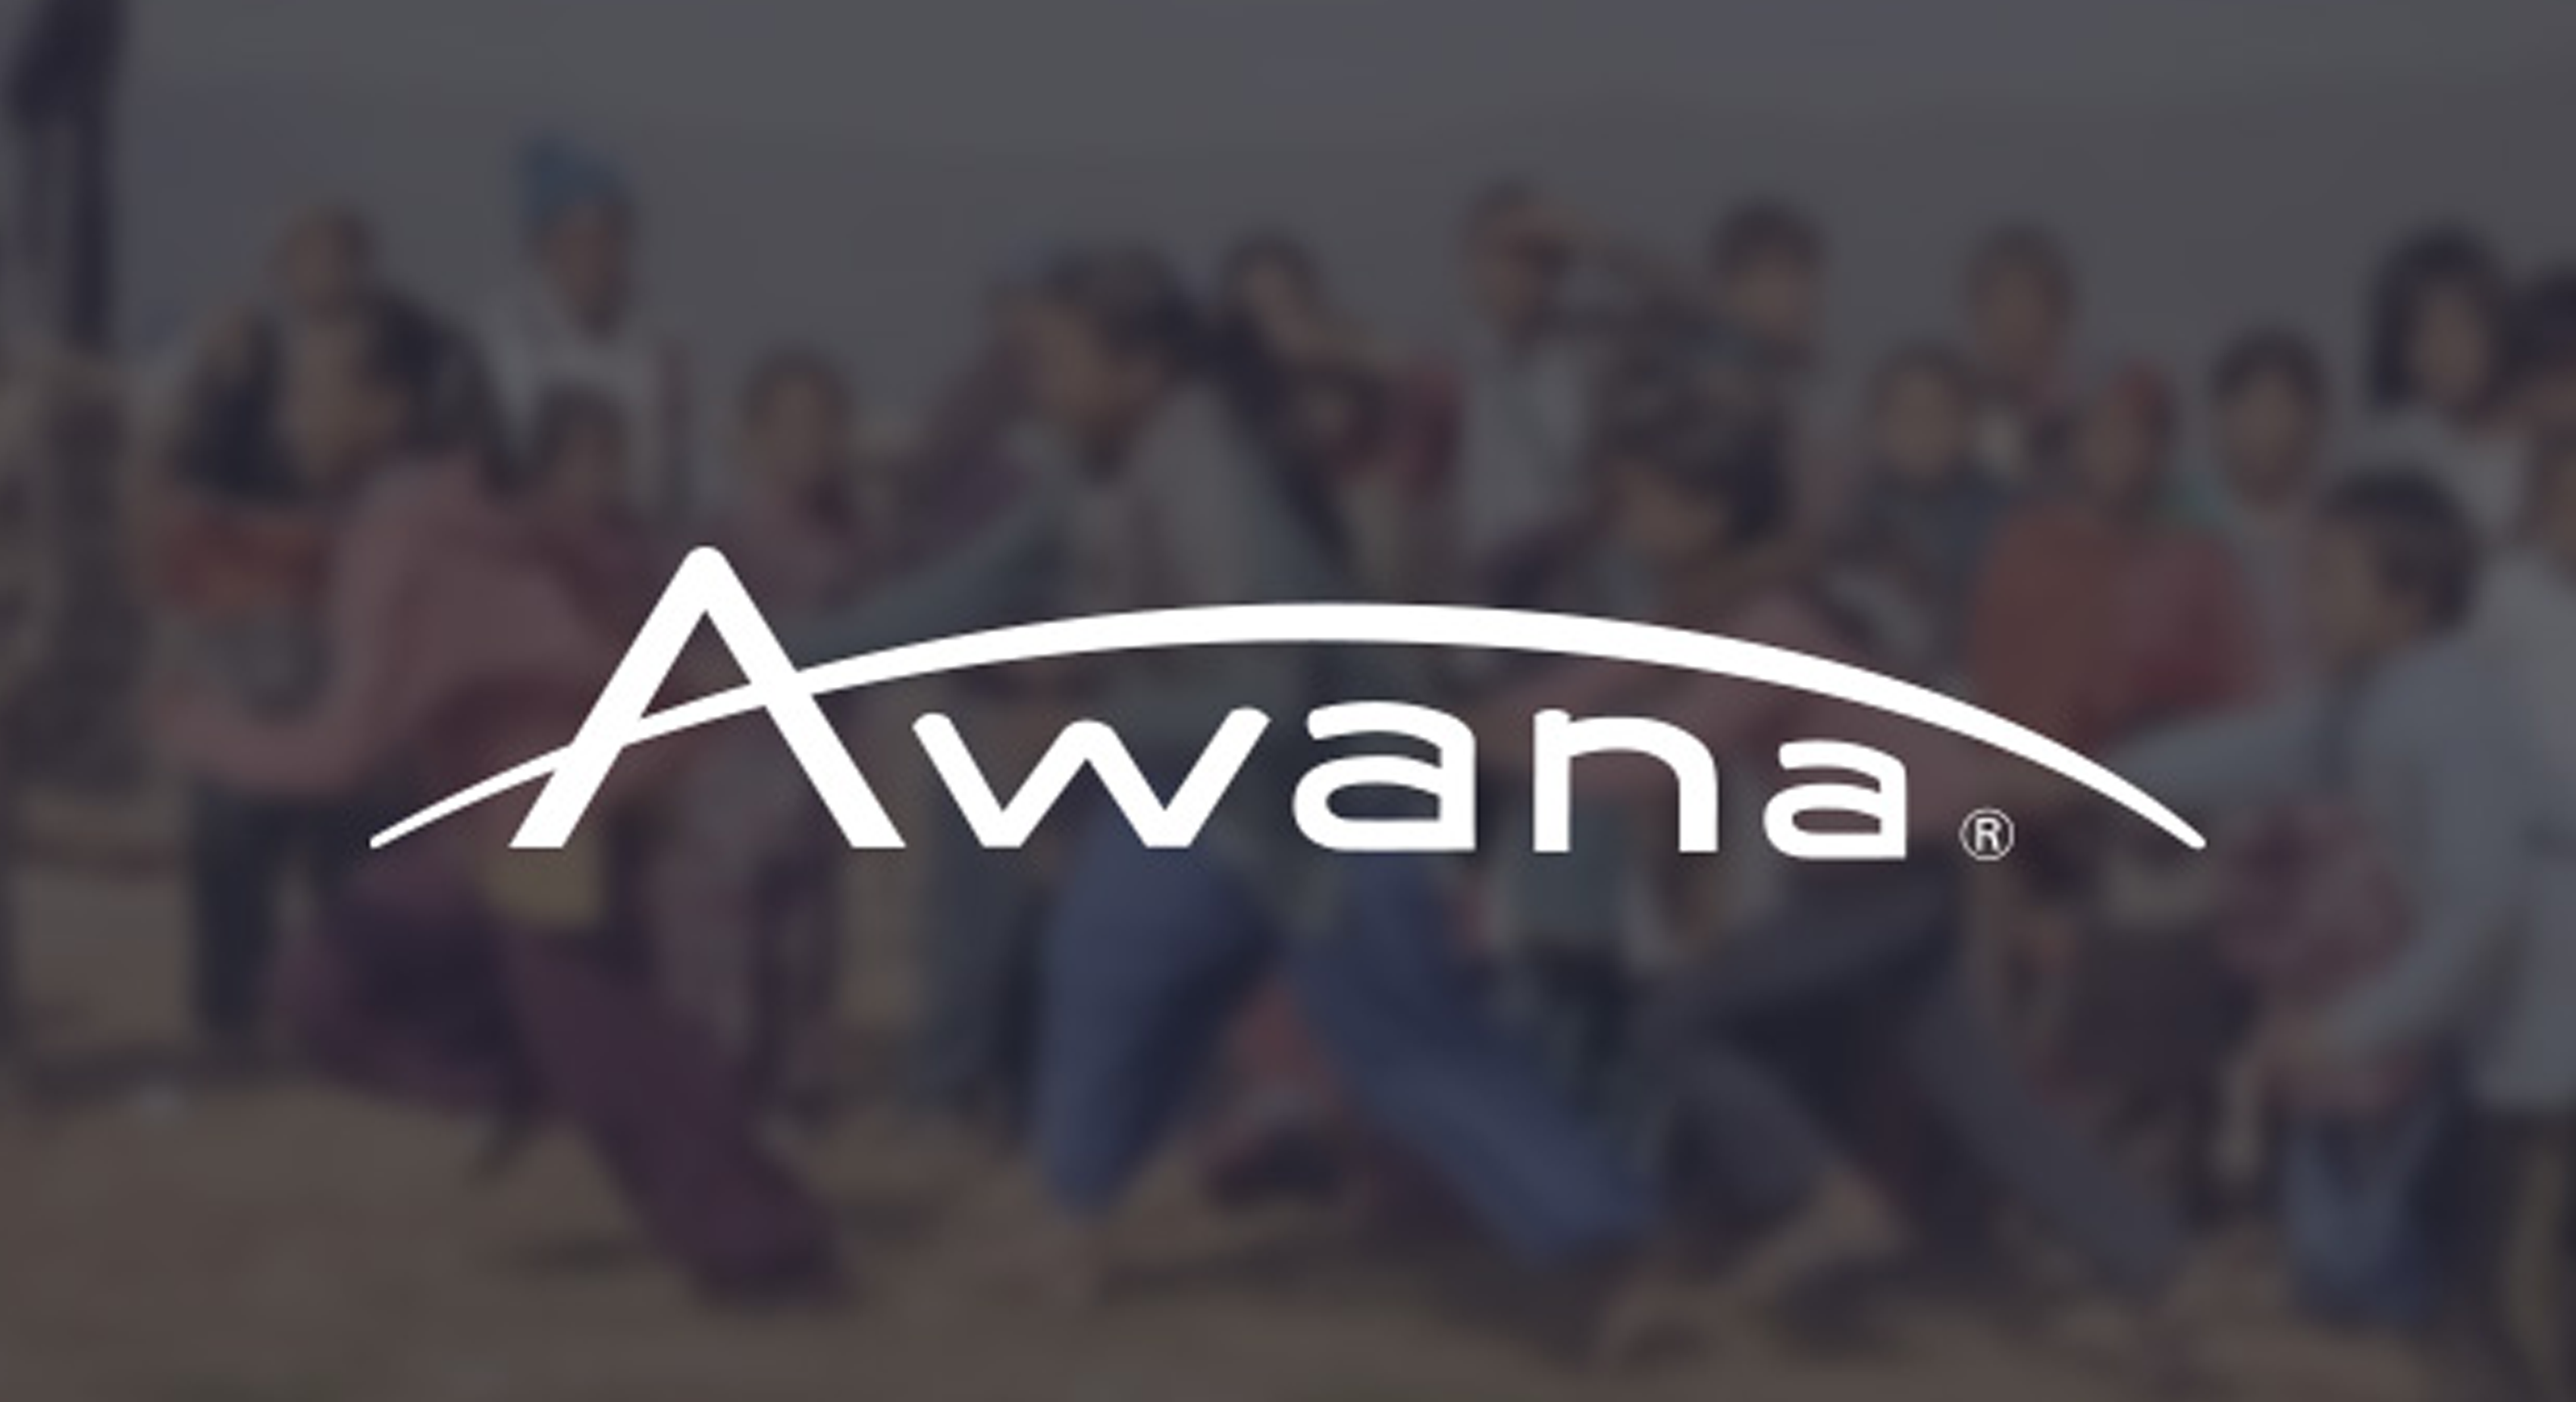 Awana Leverages OneLogin to Provide Secure Single Sign On to Public and Private Apps and Reduce Help Desk Calls by 80%